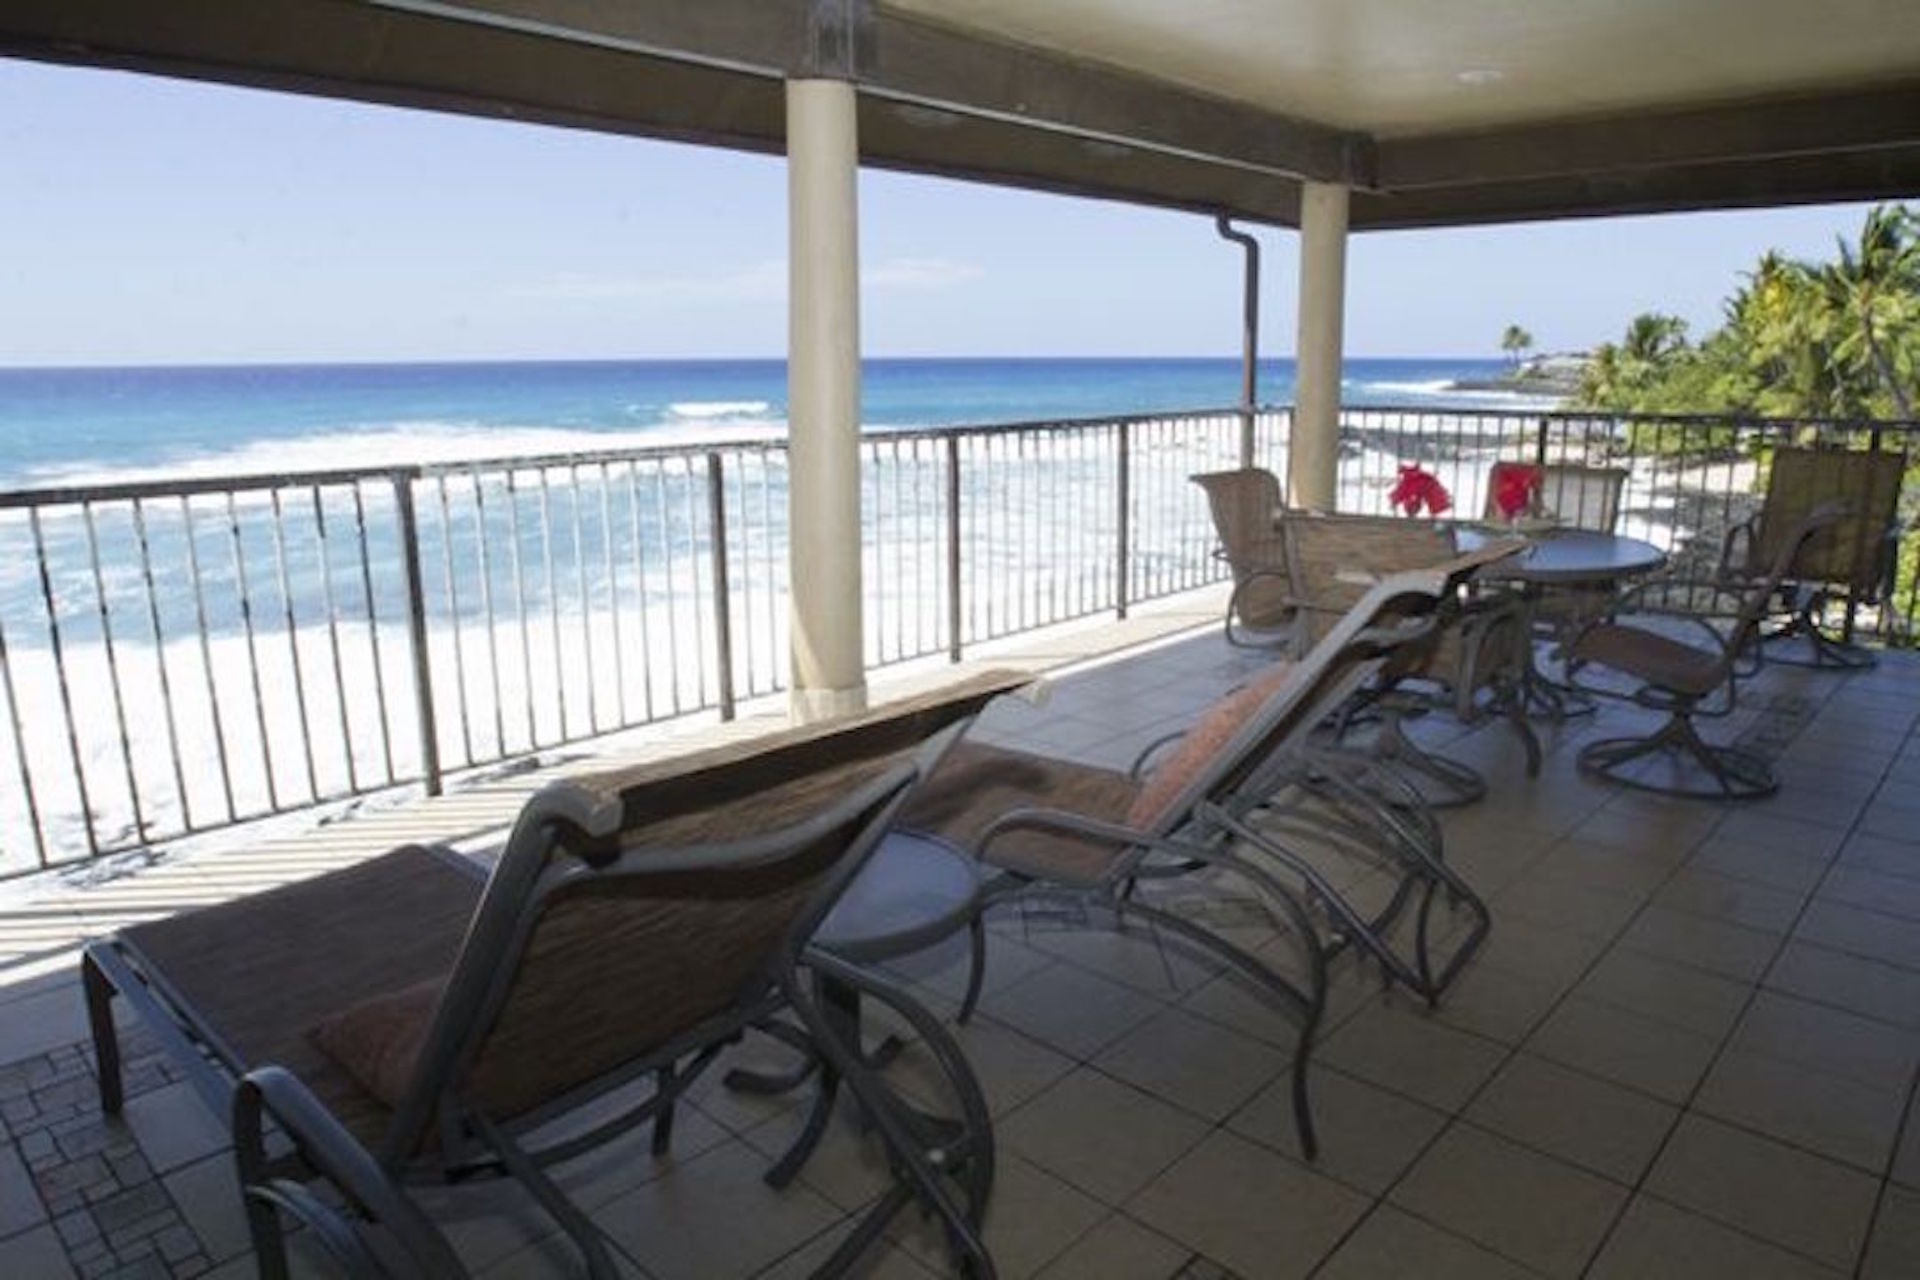 Top floor corner condo with over 300 square feet of tiled lanai living.